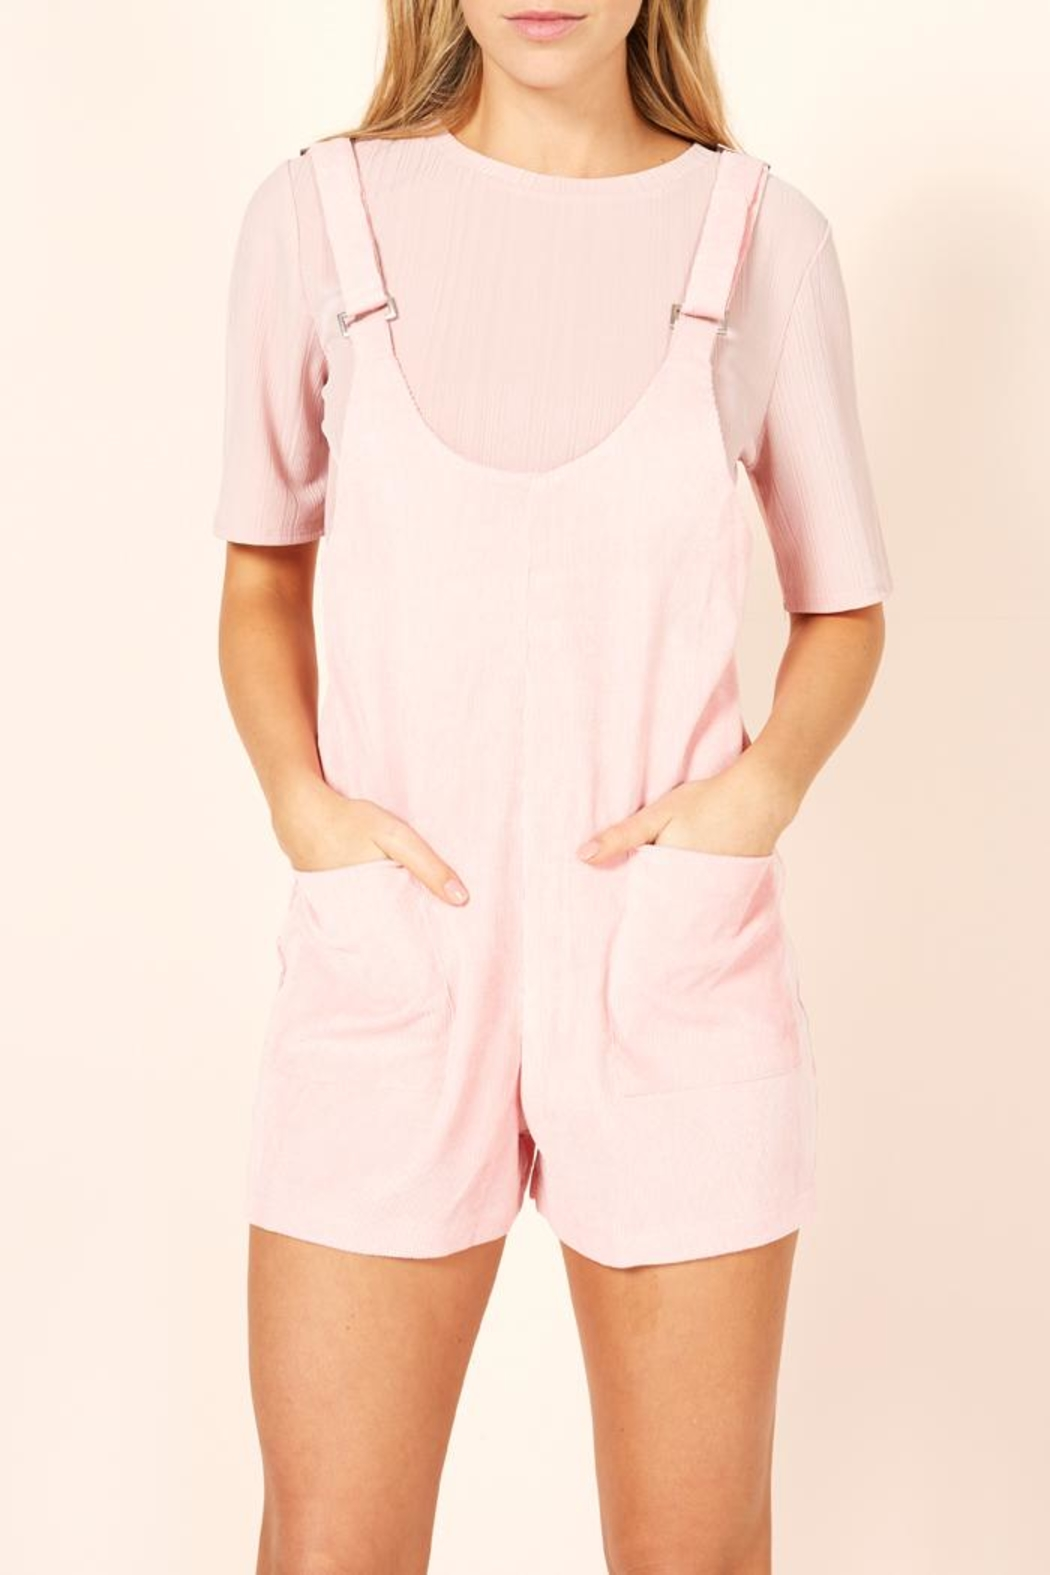 996c2305ff37 MinkPink Pink Overall Romper from New York by Luna — Shoptiques